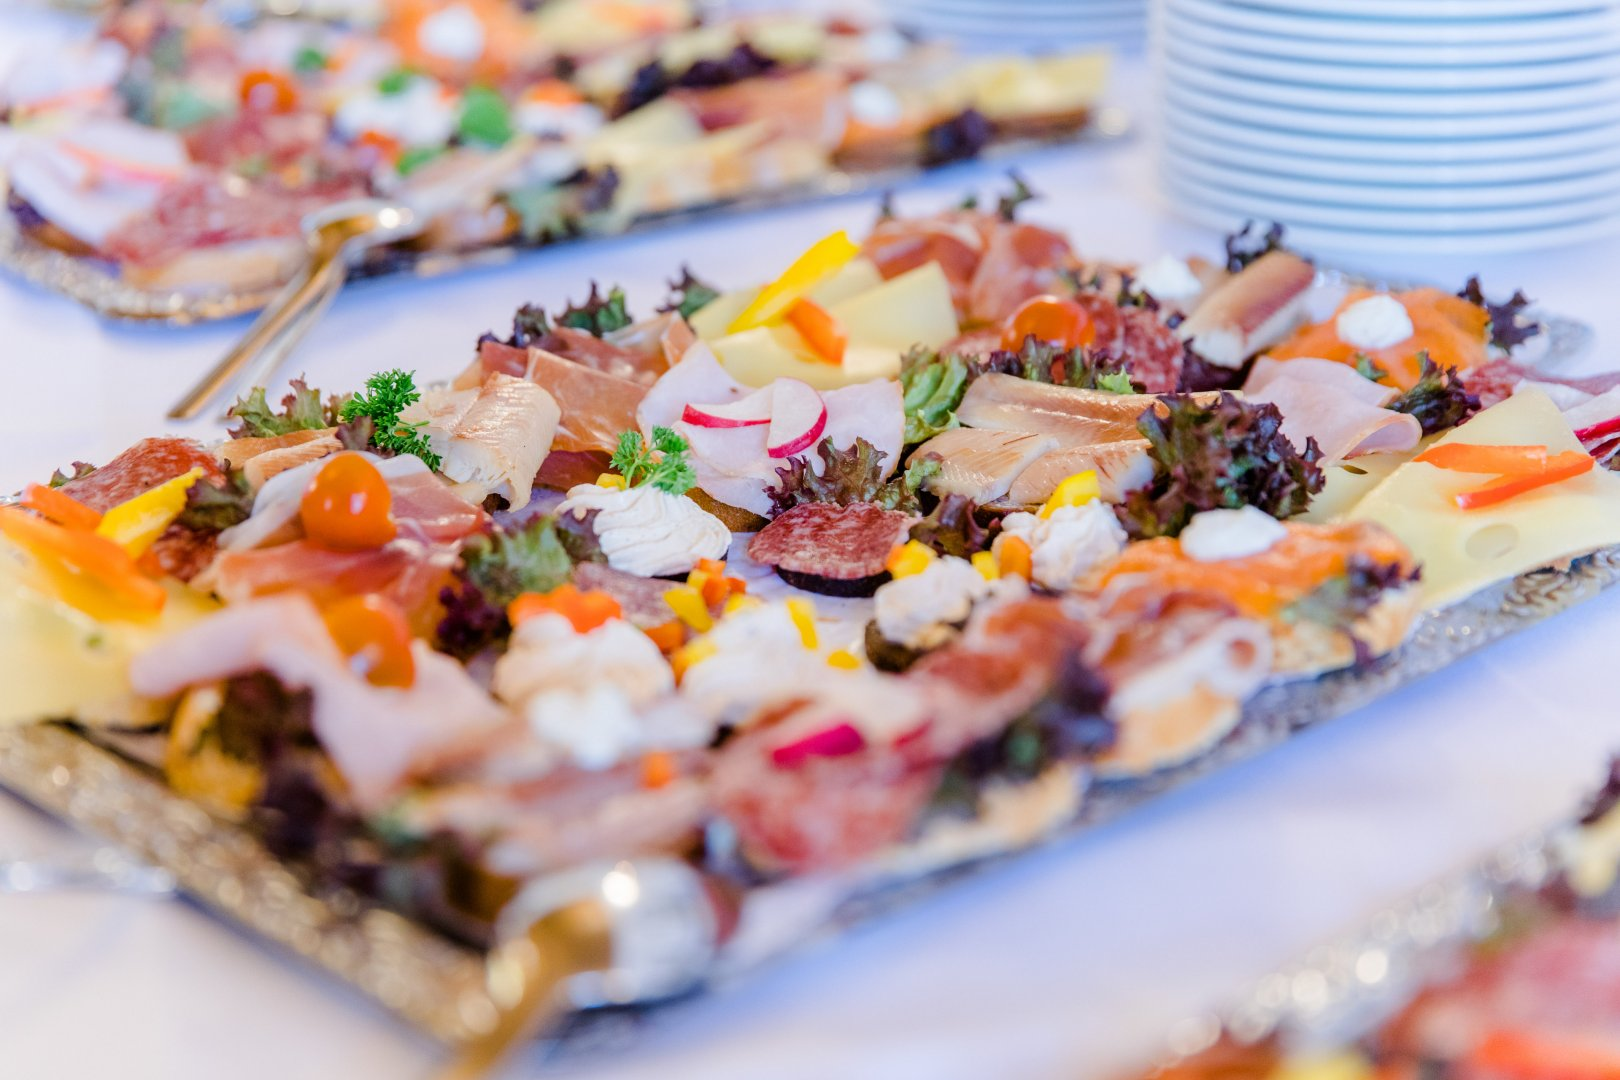 Dish Cuisine Food Ingredient Finger food Recipe Produce Canapé Hors d'oeuvre appetizer Comfort food Ceviche